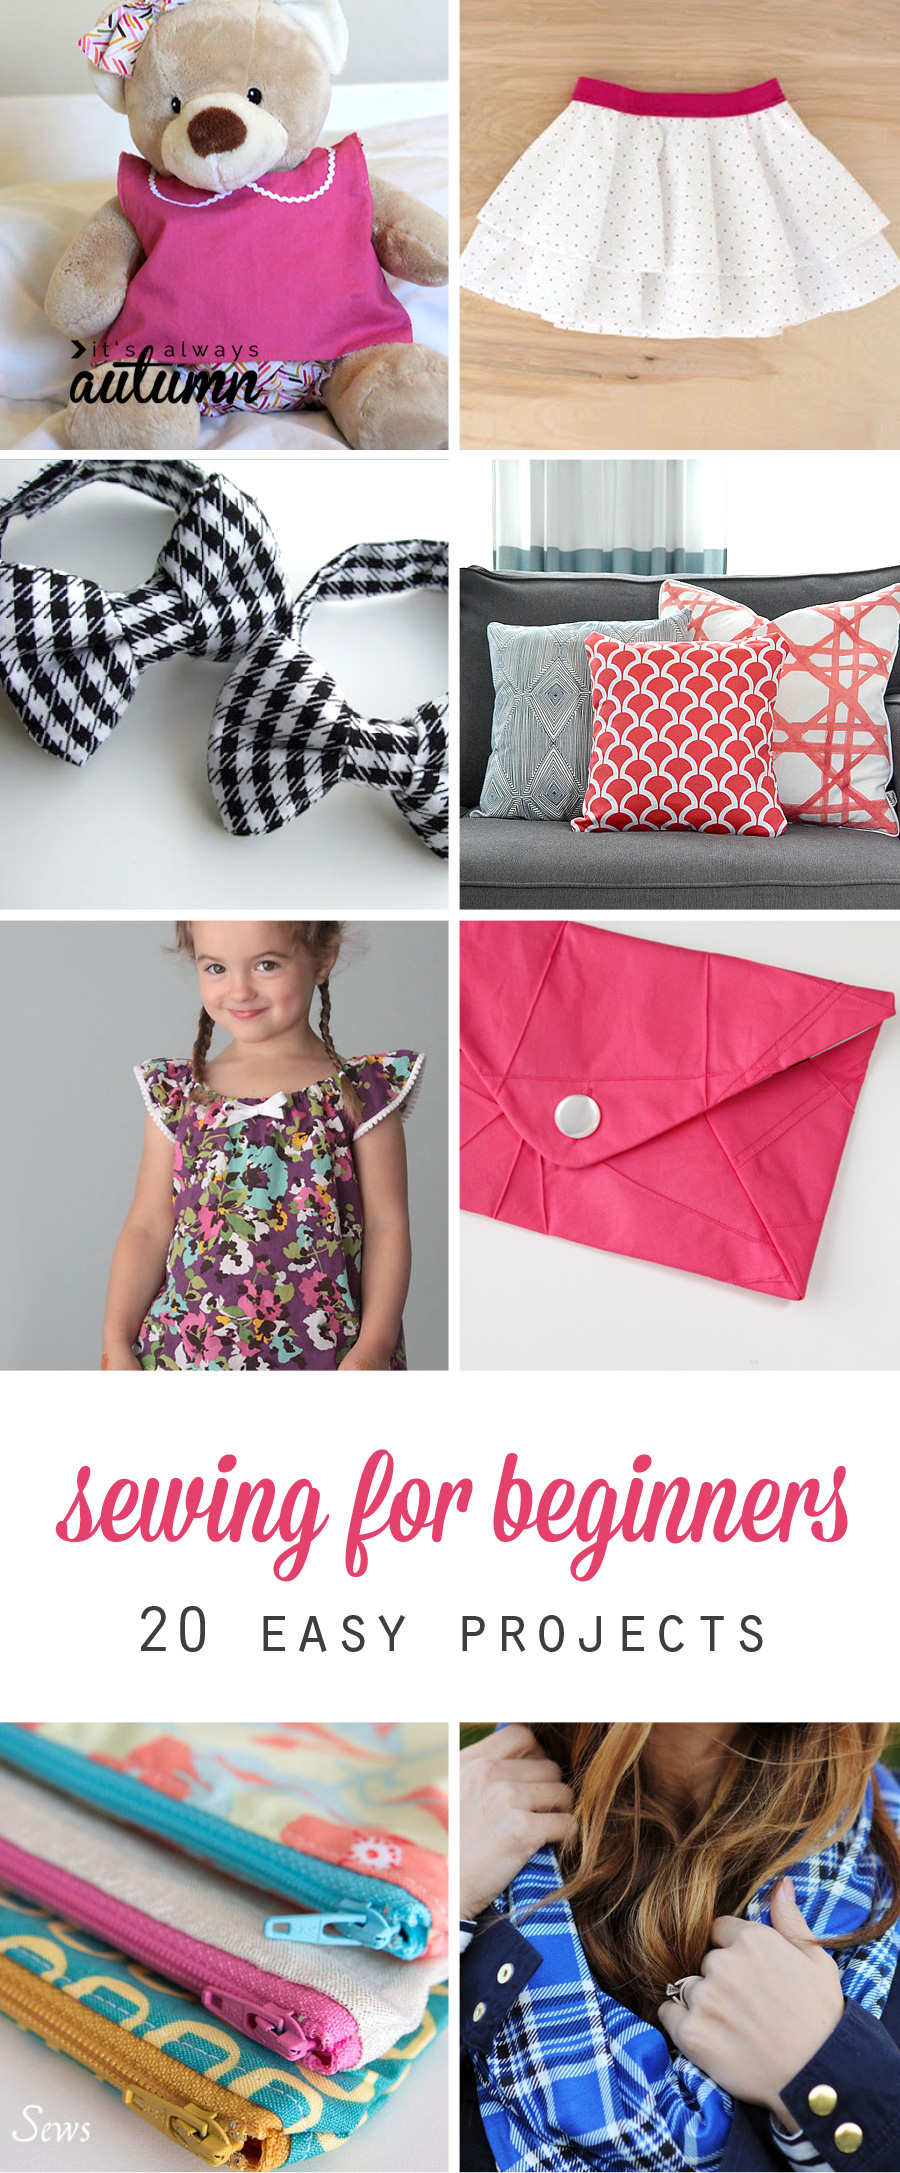 20 easy beginner sewing projects that turn out super cute its 20 easy sewing projects for beginners i think i could actually do some of these jeuxipadfo Image collections